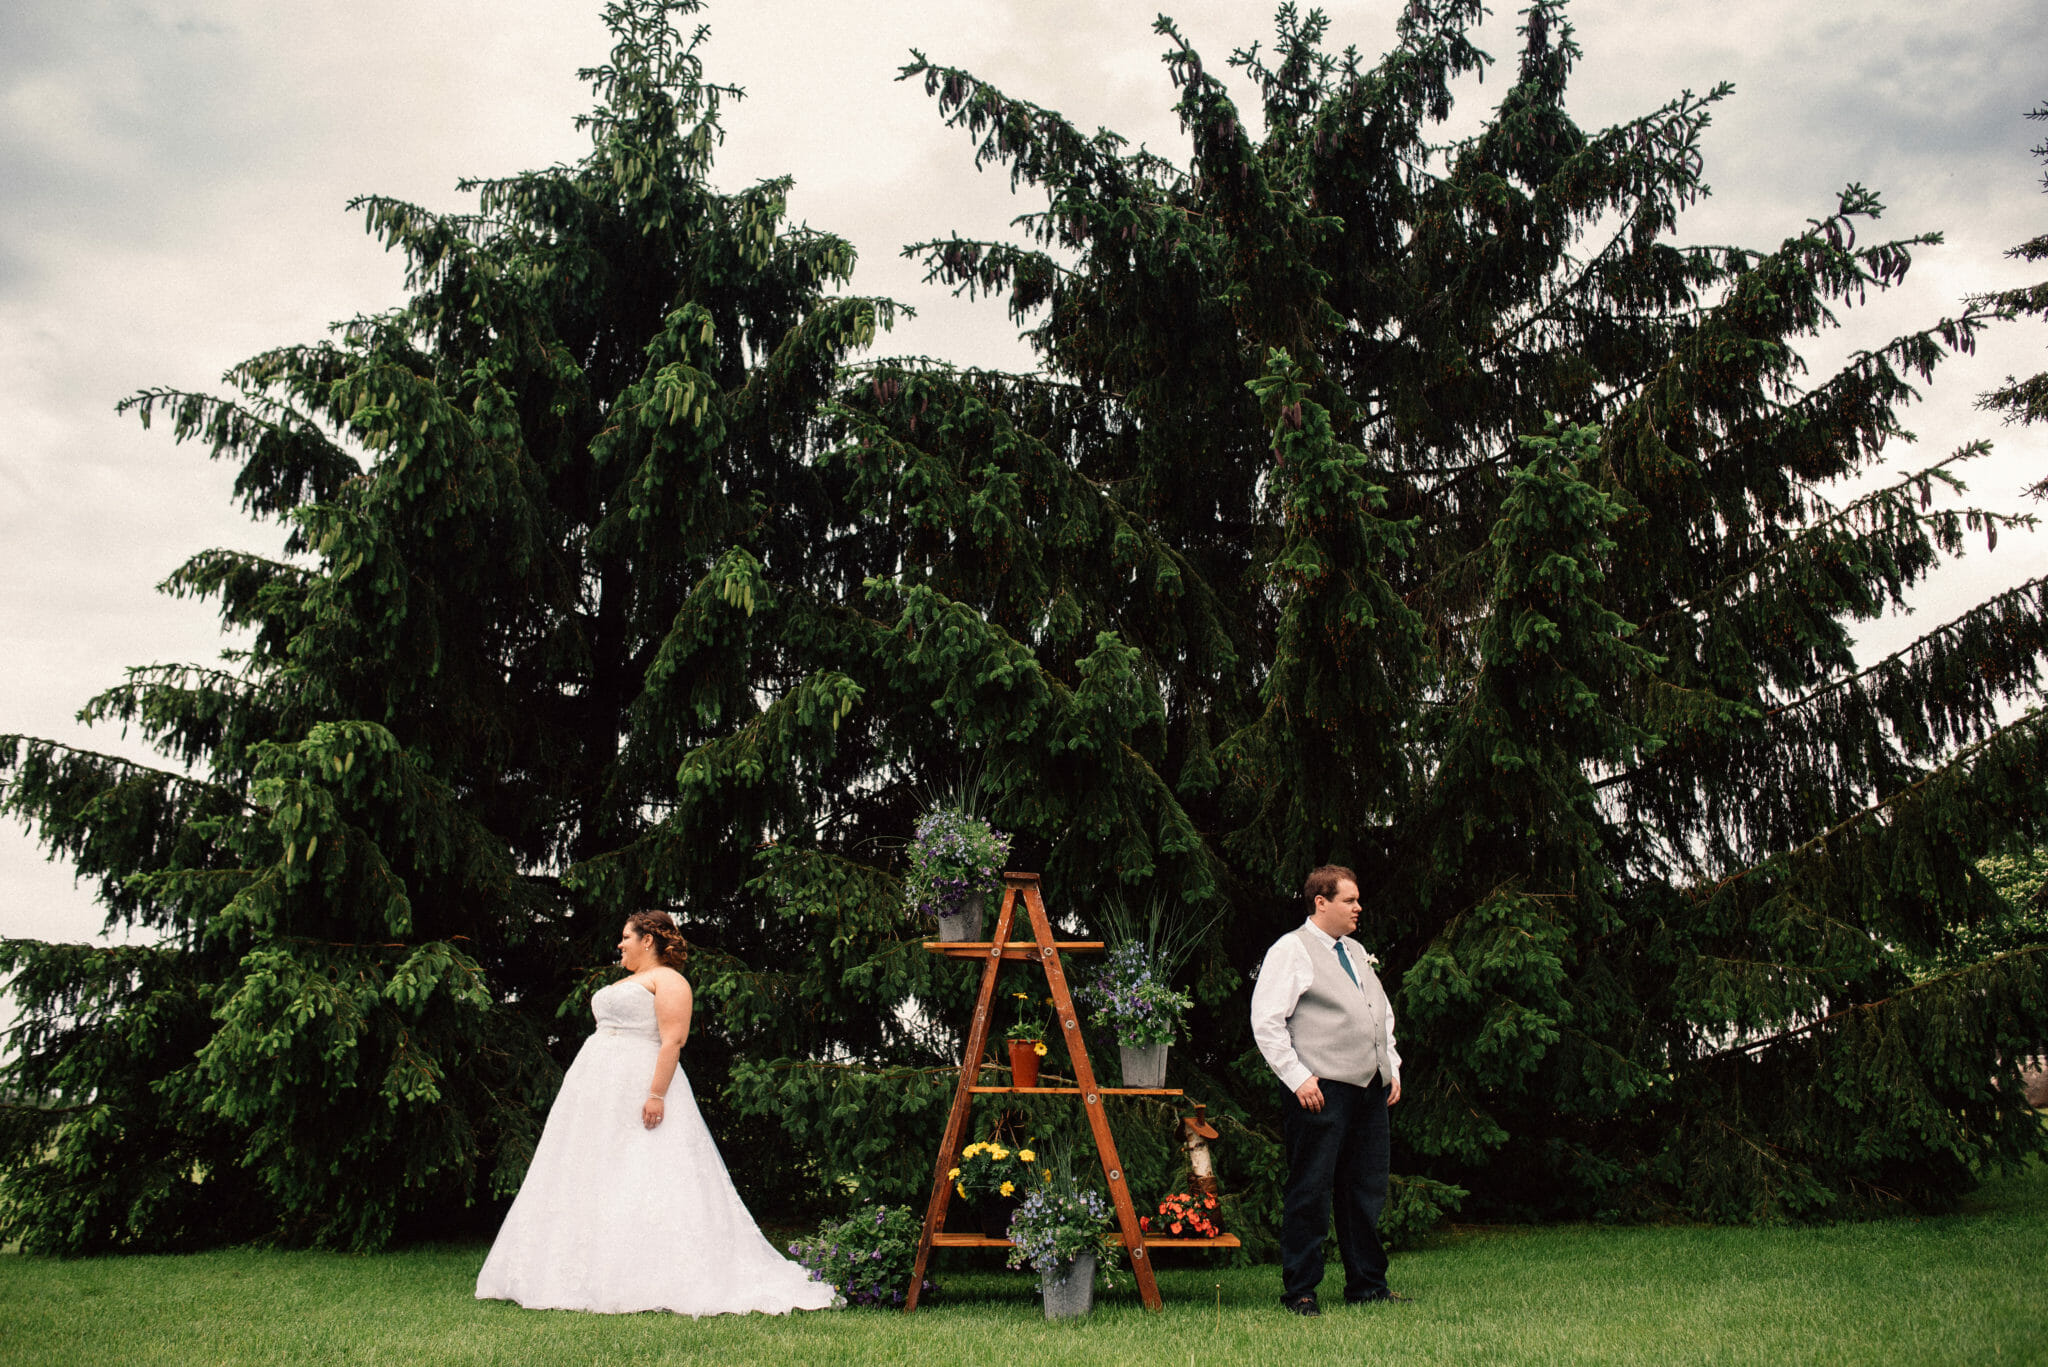 pickering wedding photography rustic country theme